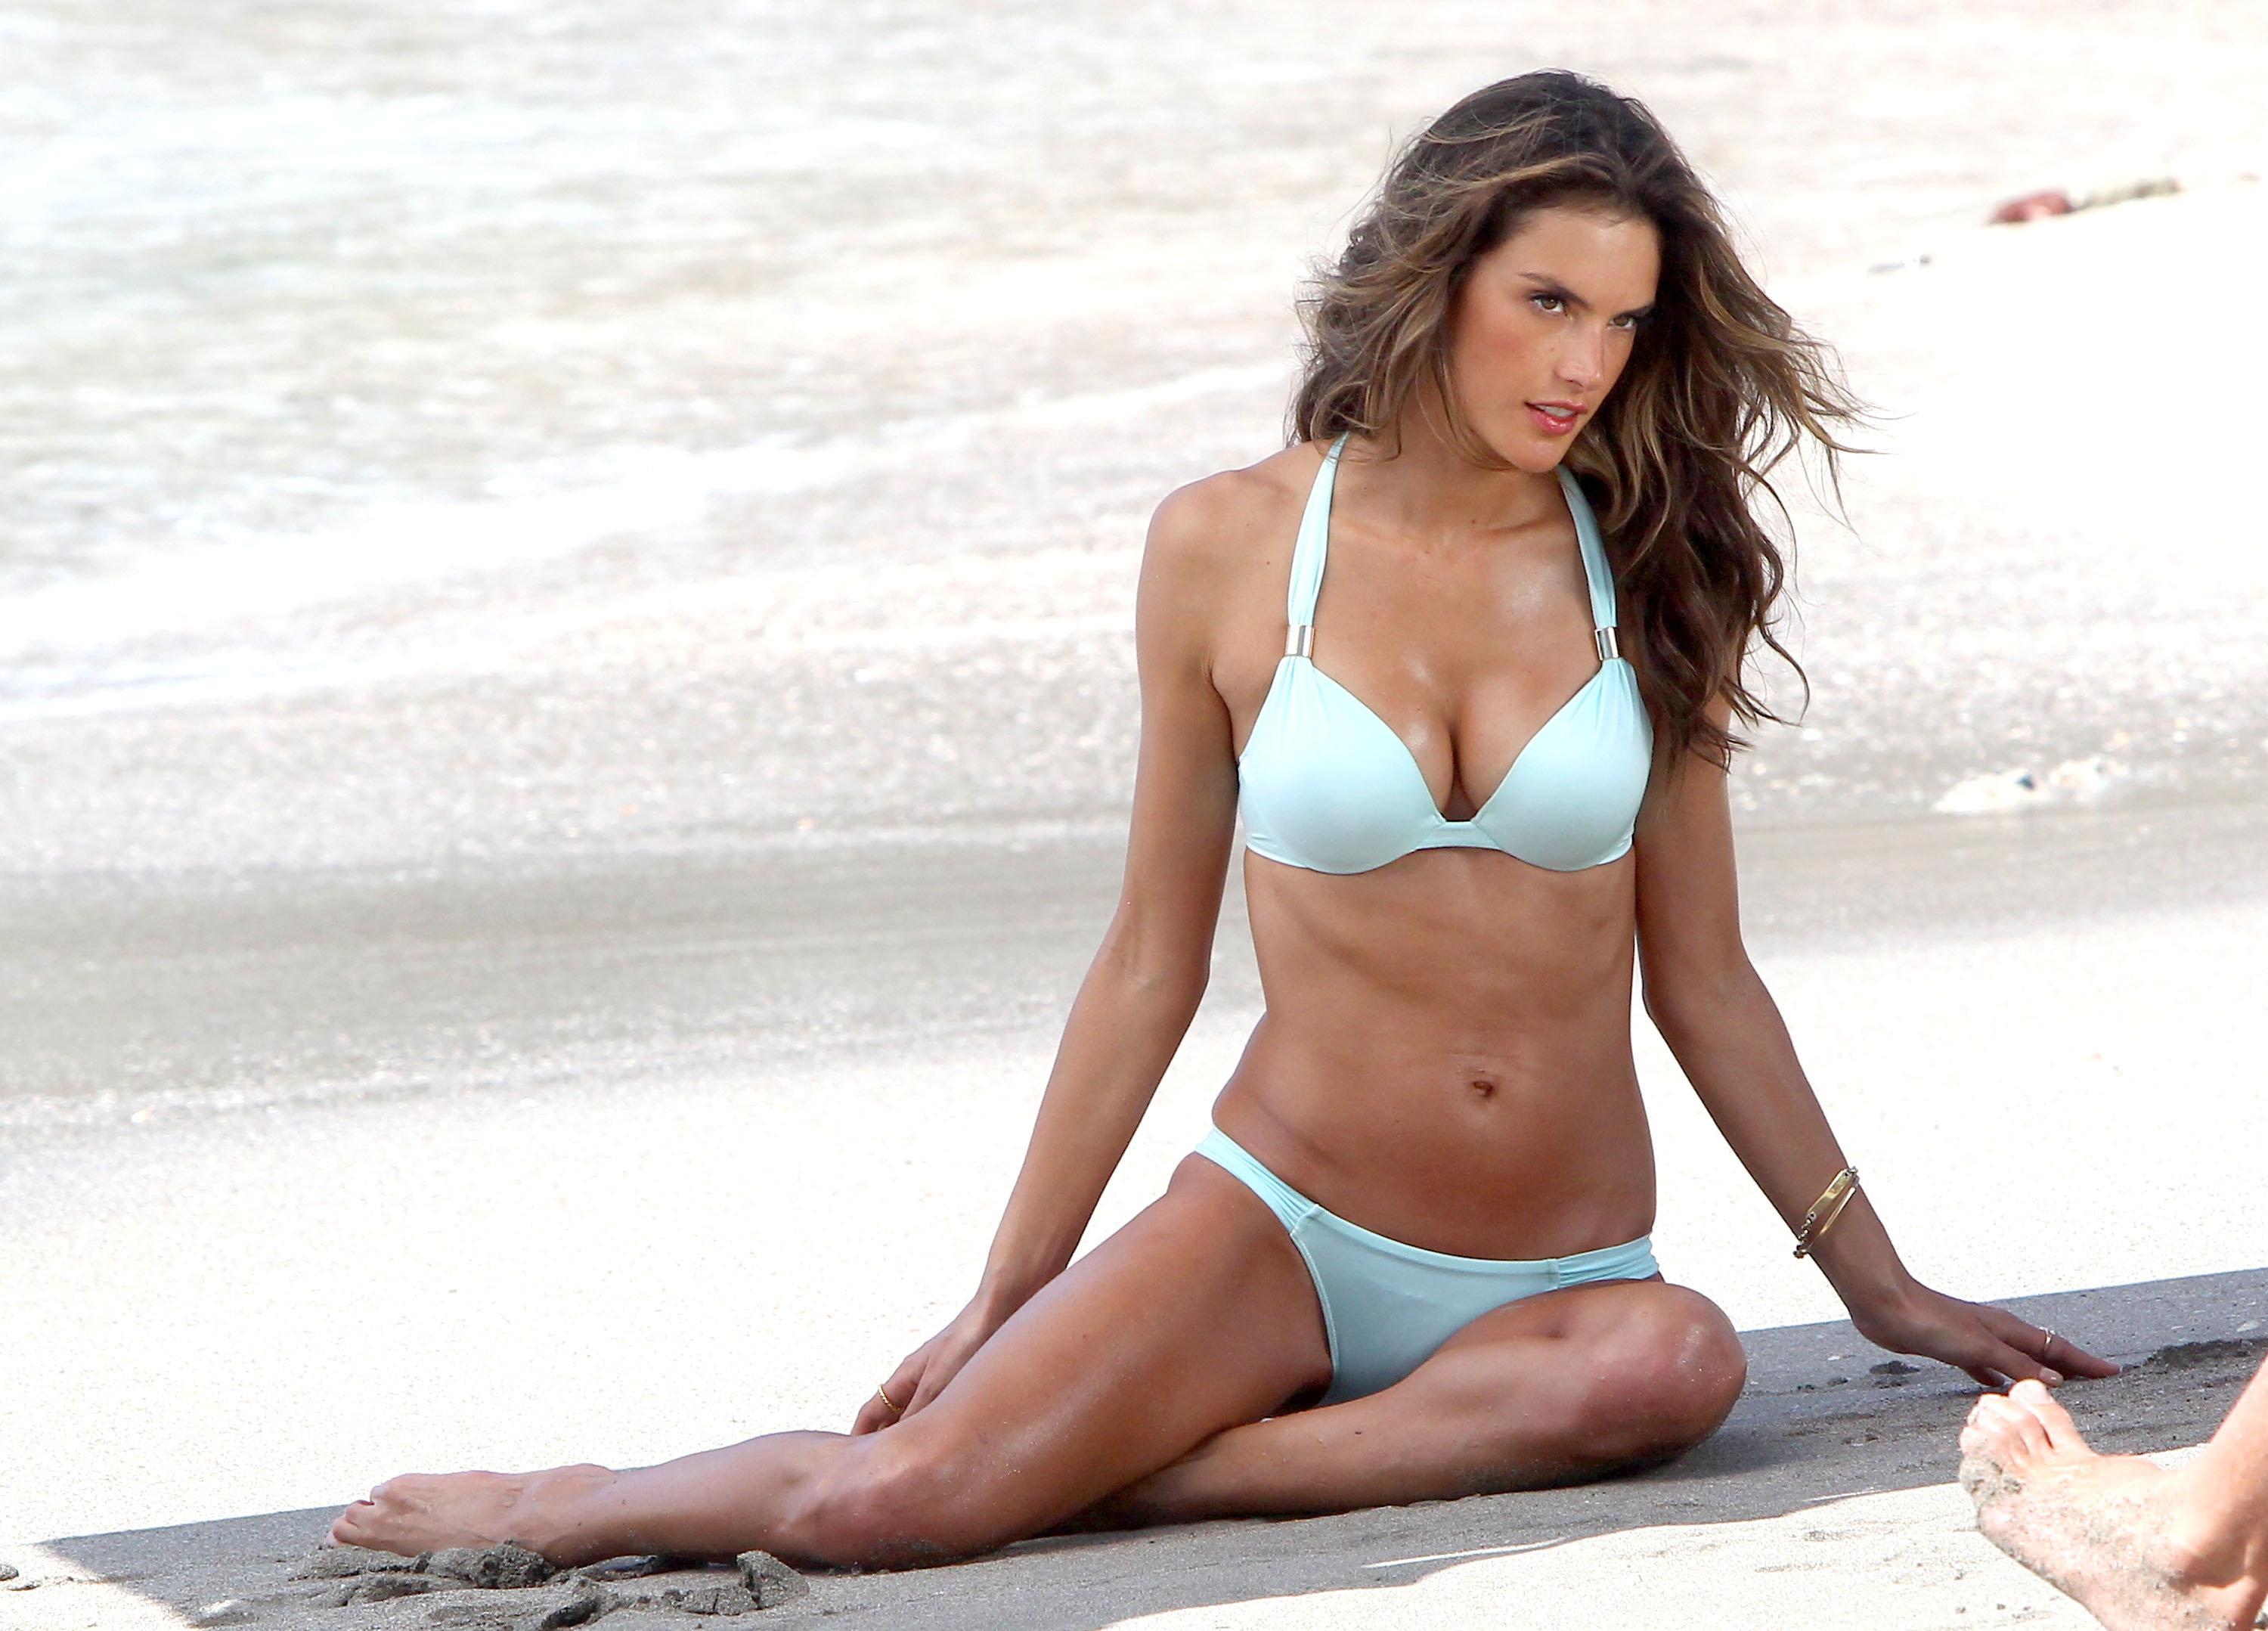 51003697 Model Alessandra Ambrosio shows off her bikini body on a Victoria's Secret photo shoot on the beach of sunny St Barts on January 31, 2013. FameFlynet, Inc - Beverly Hills, CA, USA - +1 (818) 307-4813